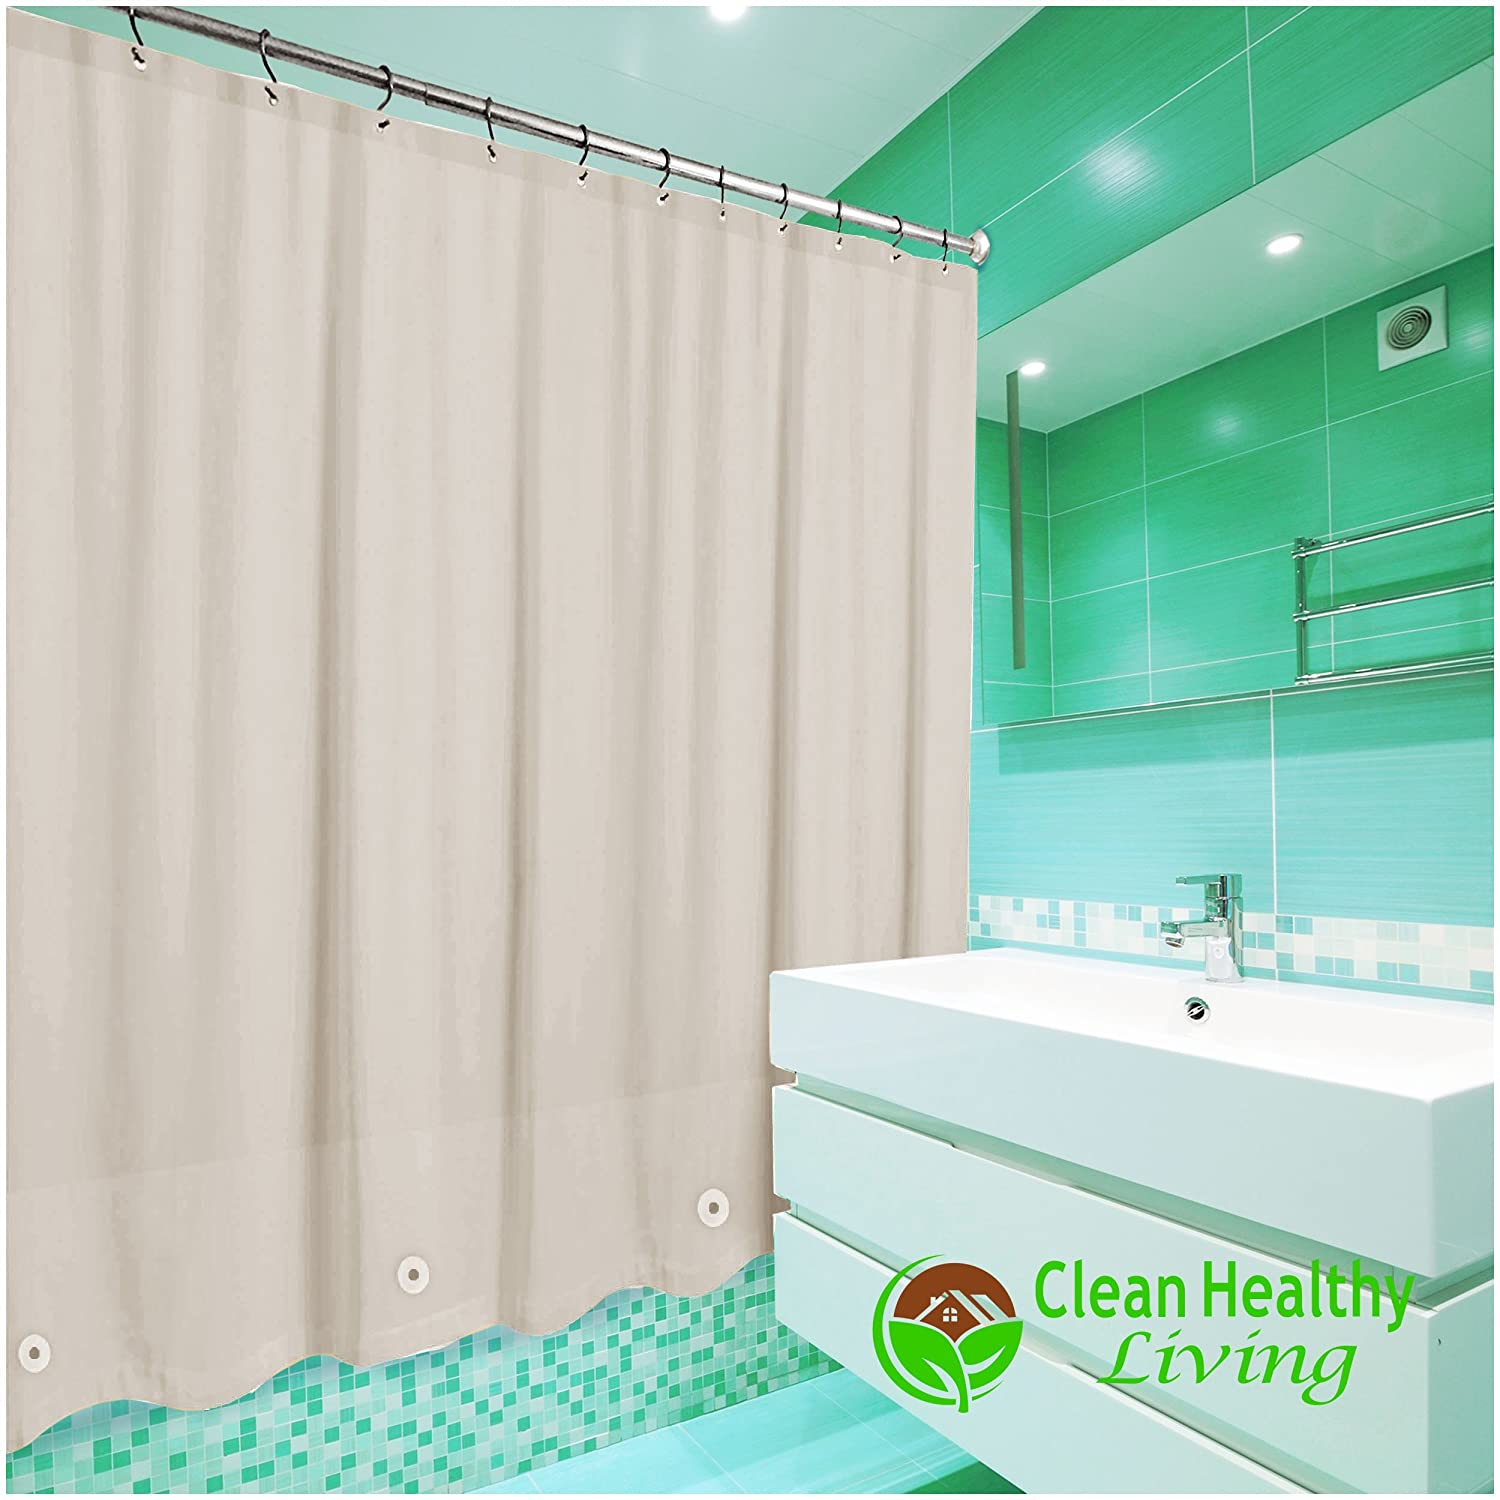 Clean Healthy Living Heavy Duty PEVA Shower Liner Curtain Odorless Anti